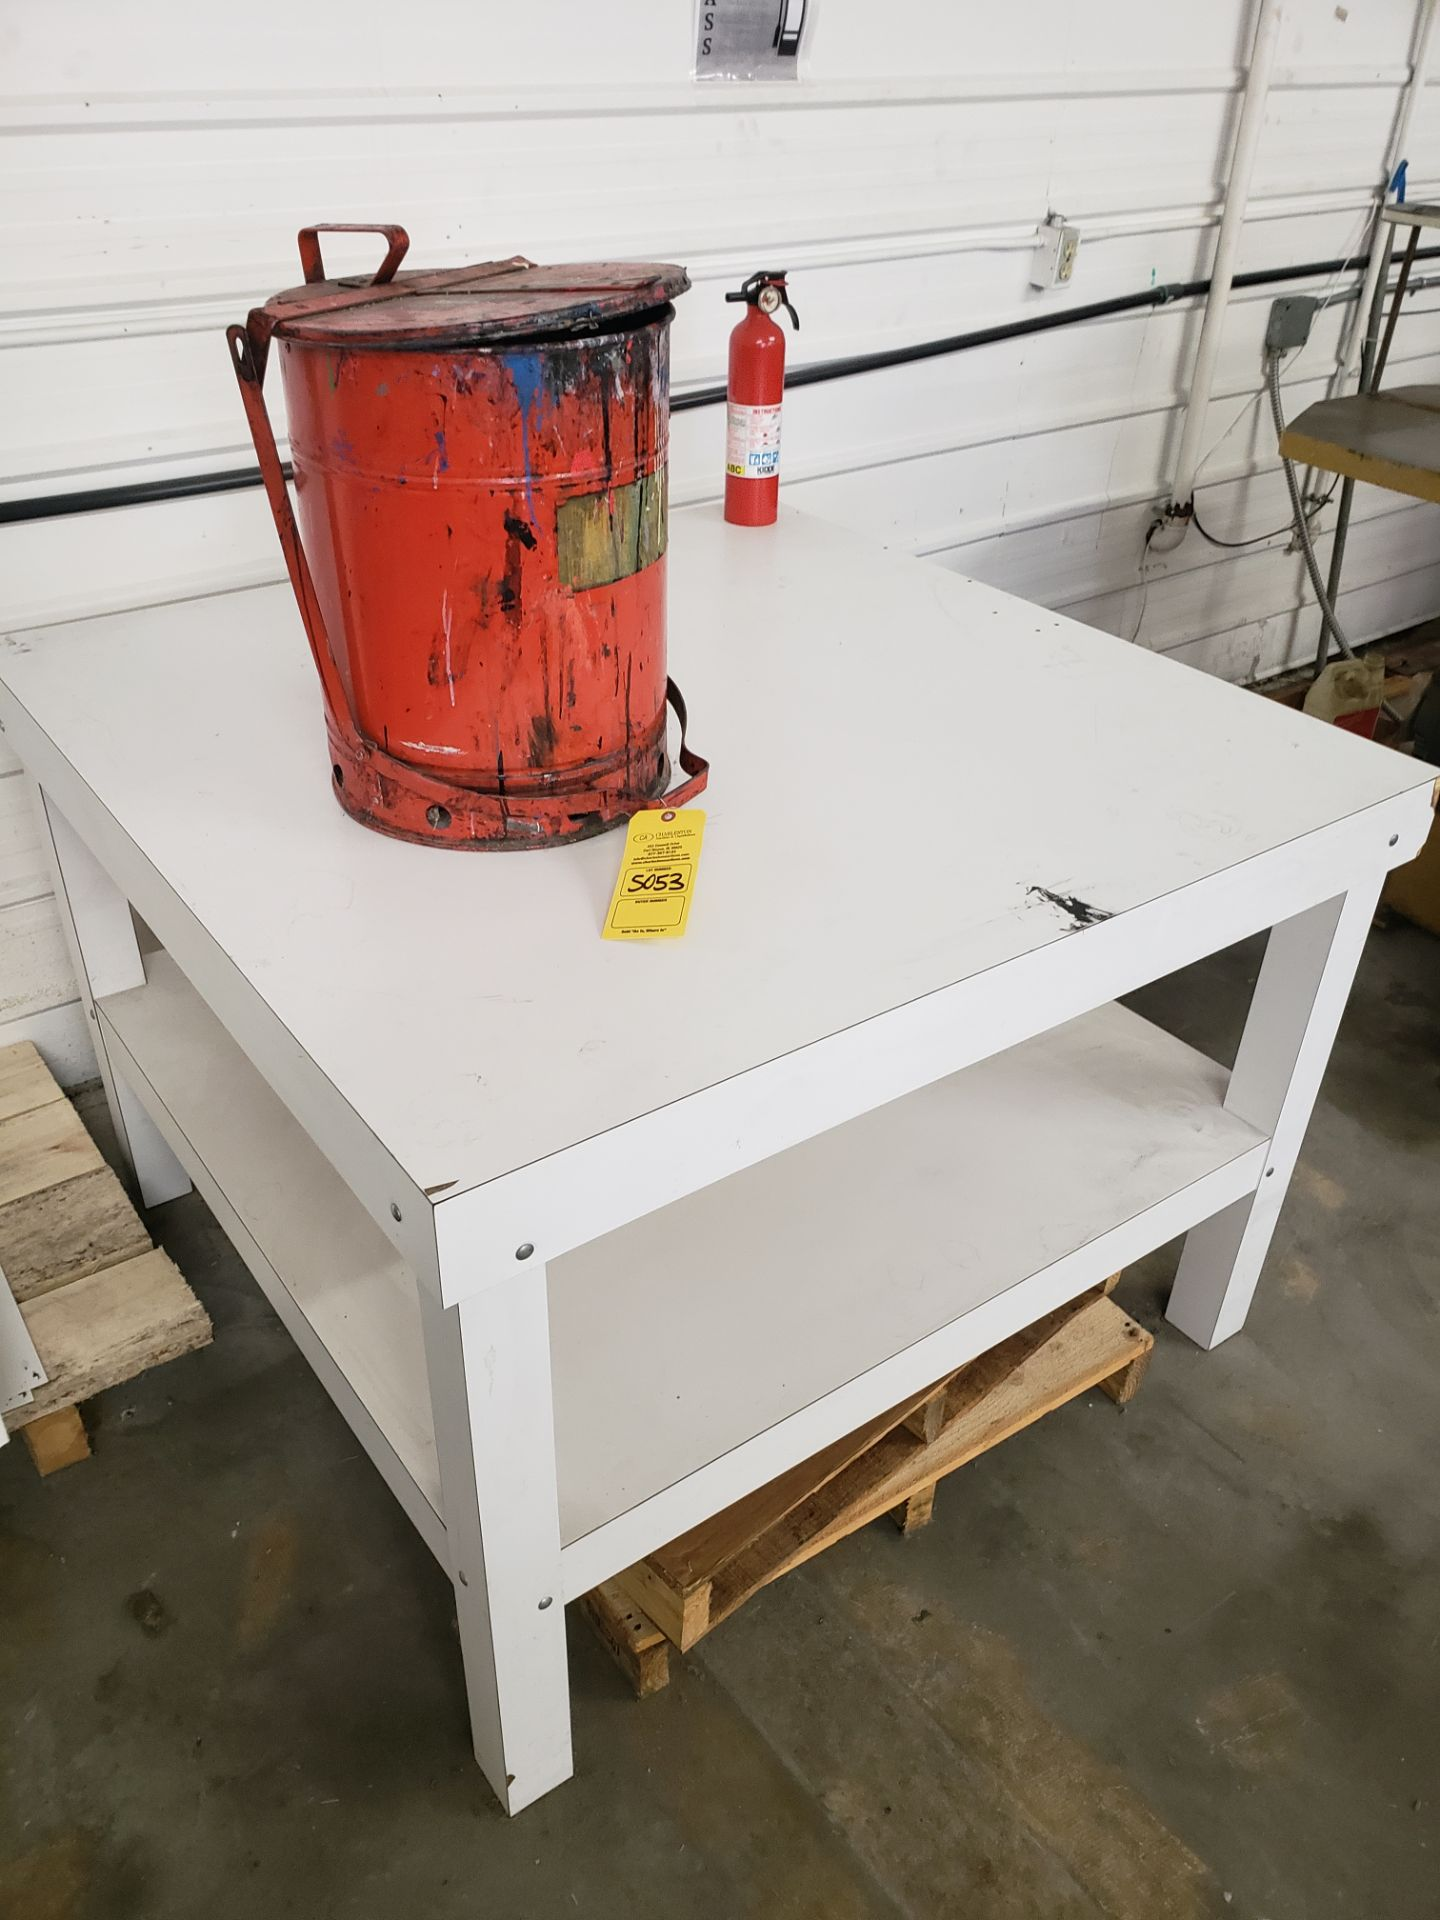 Lot 5053 - TABLE & RAG BUCKET (LOCATED AT: 16335 LIMA ROAD BLDG. 4 HUNTERTOWN, IN 46748)